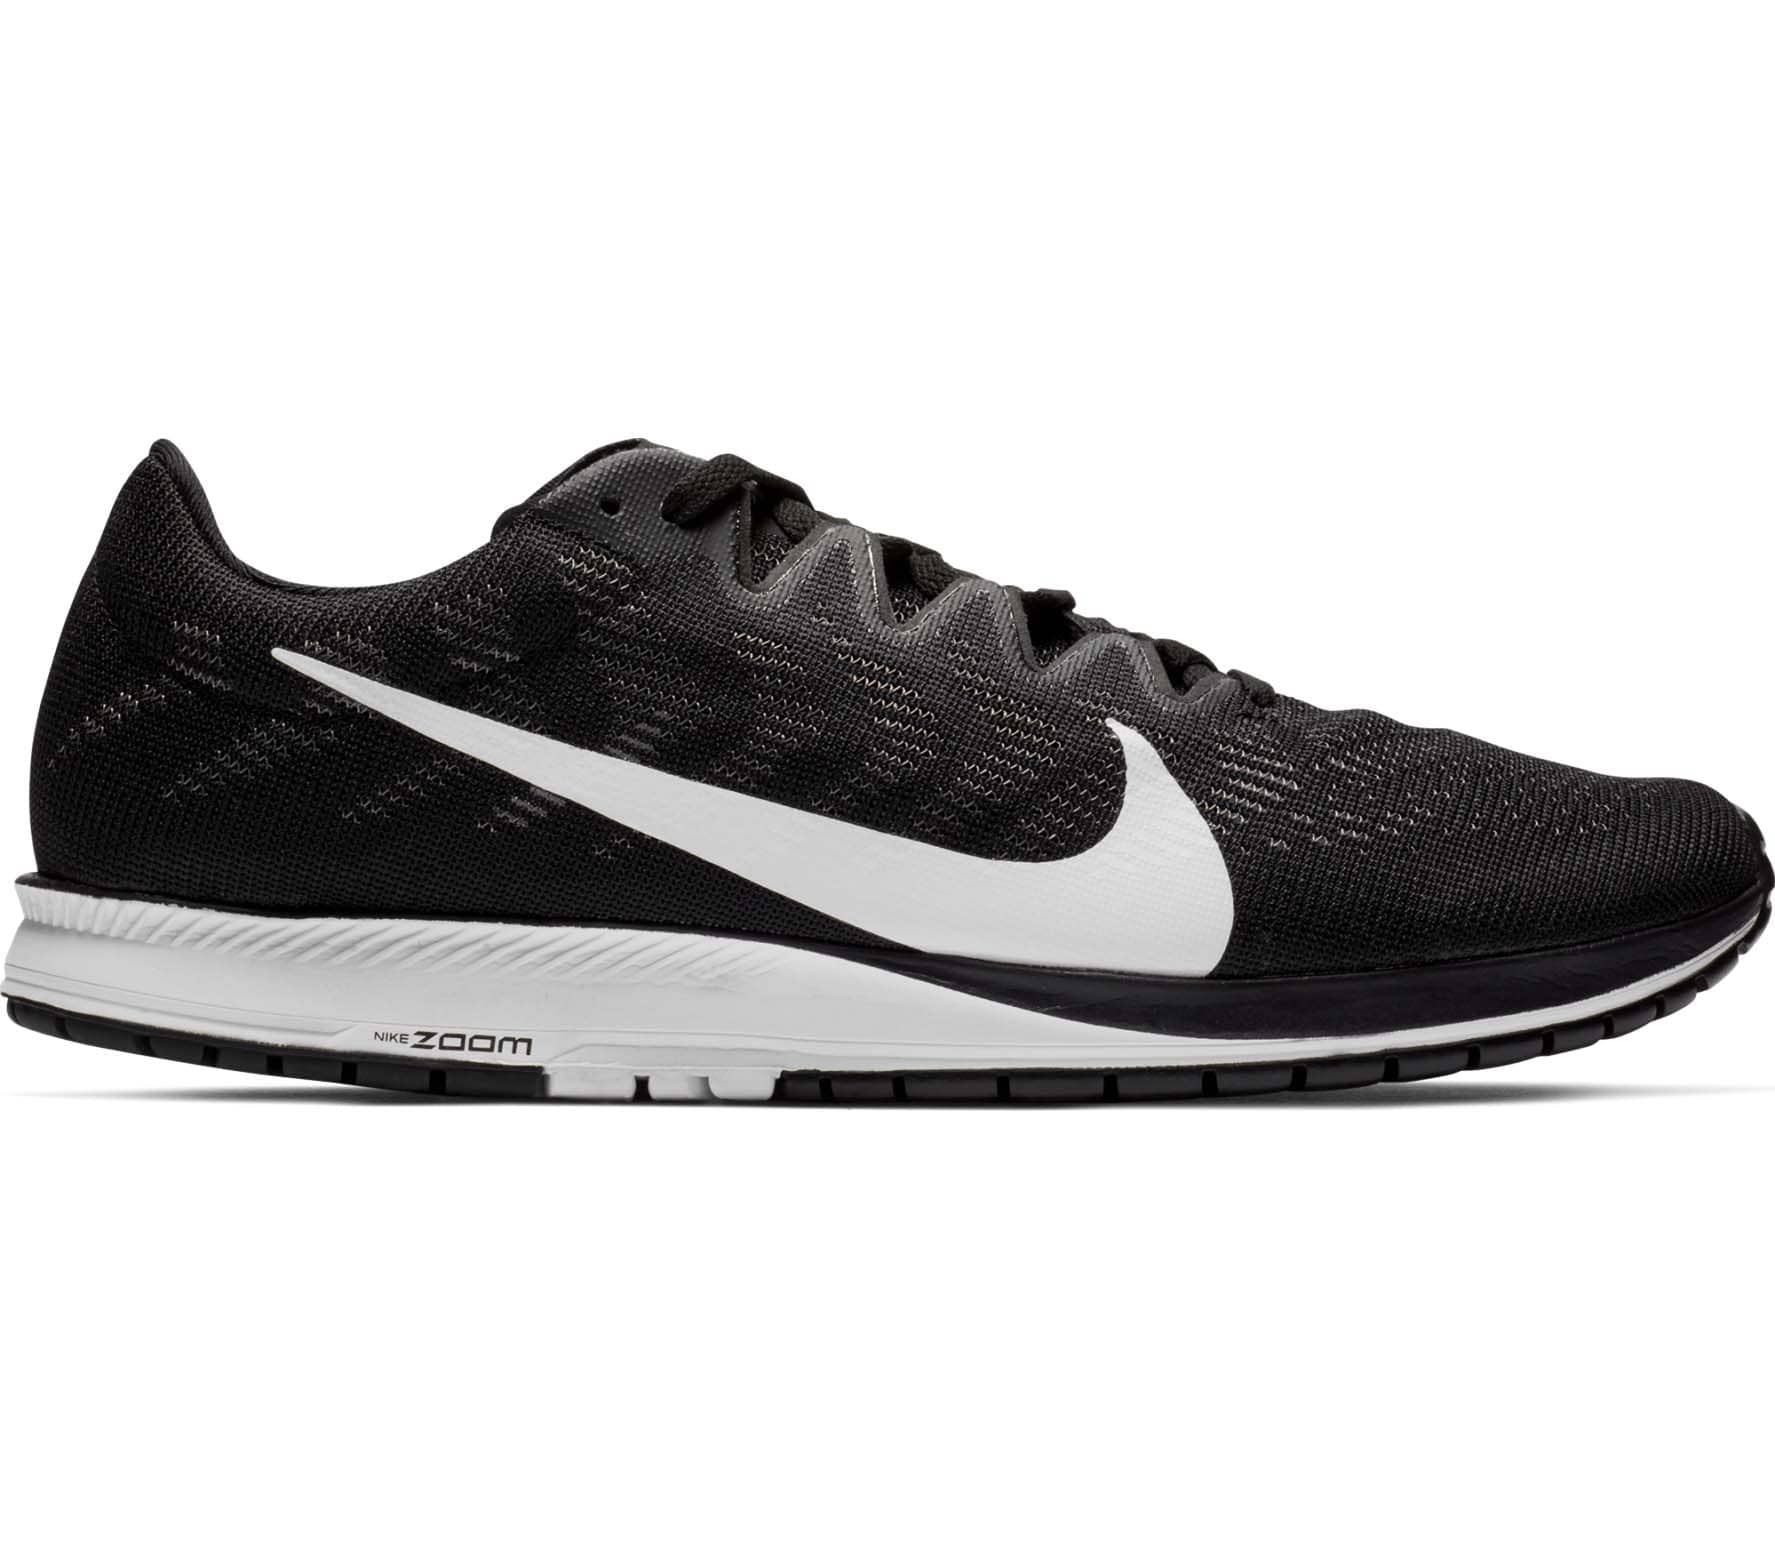 13c9e9d0d05 Nike - Air Zoom Streak 7 running shoes (black) - buy it at the ...